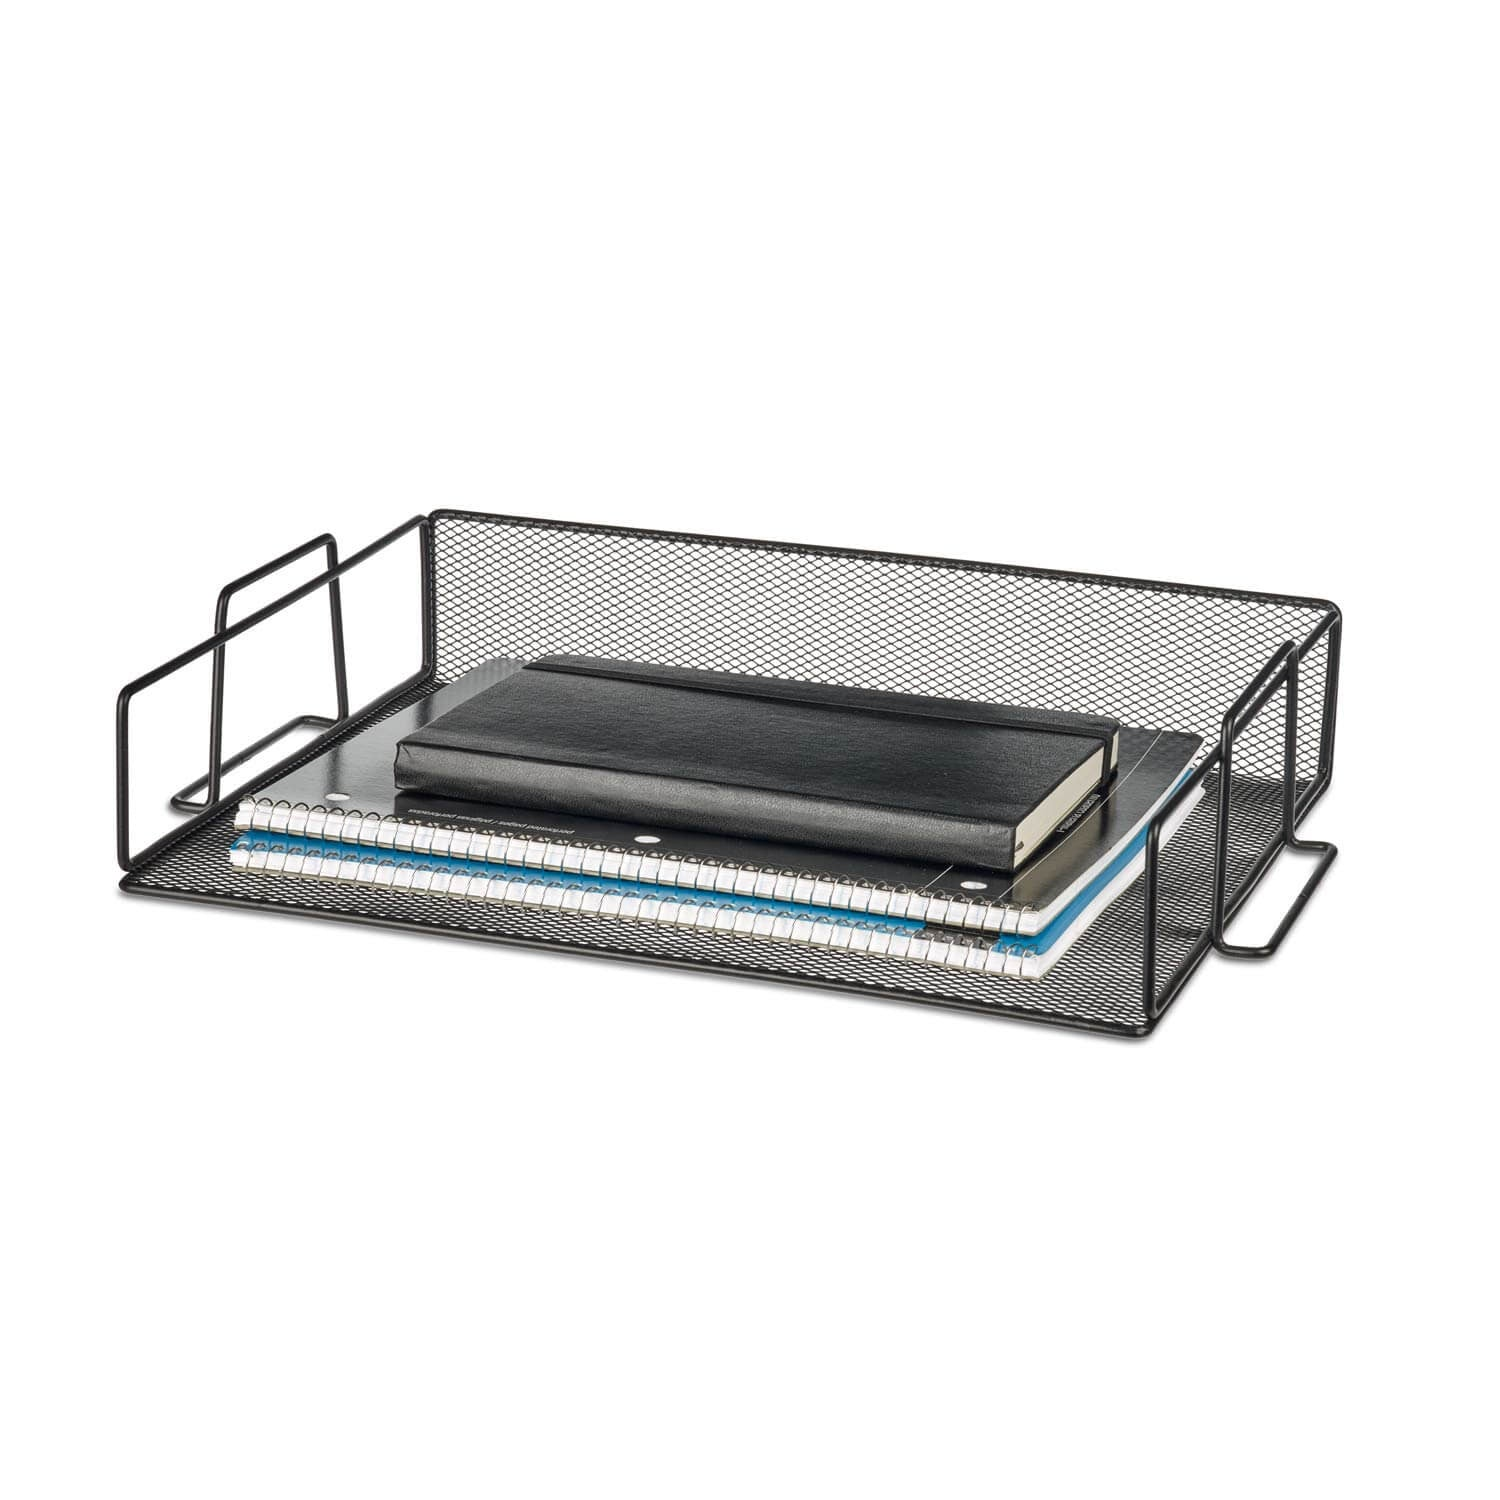 Mesh Stackable Letter Tray - Black